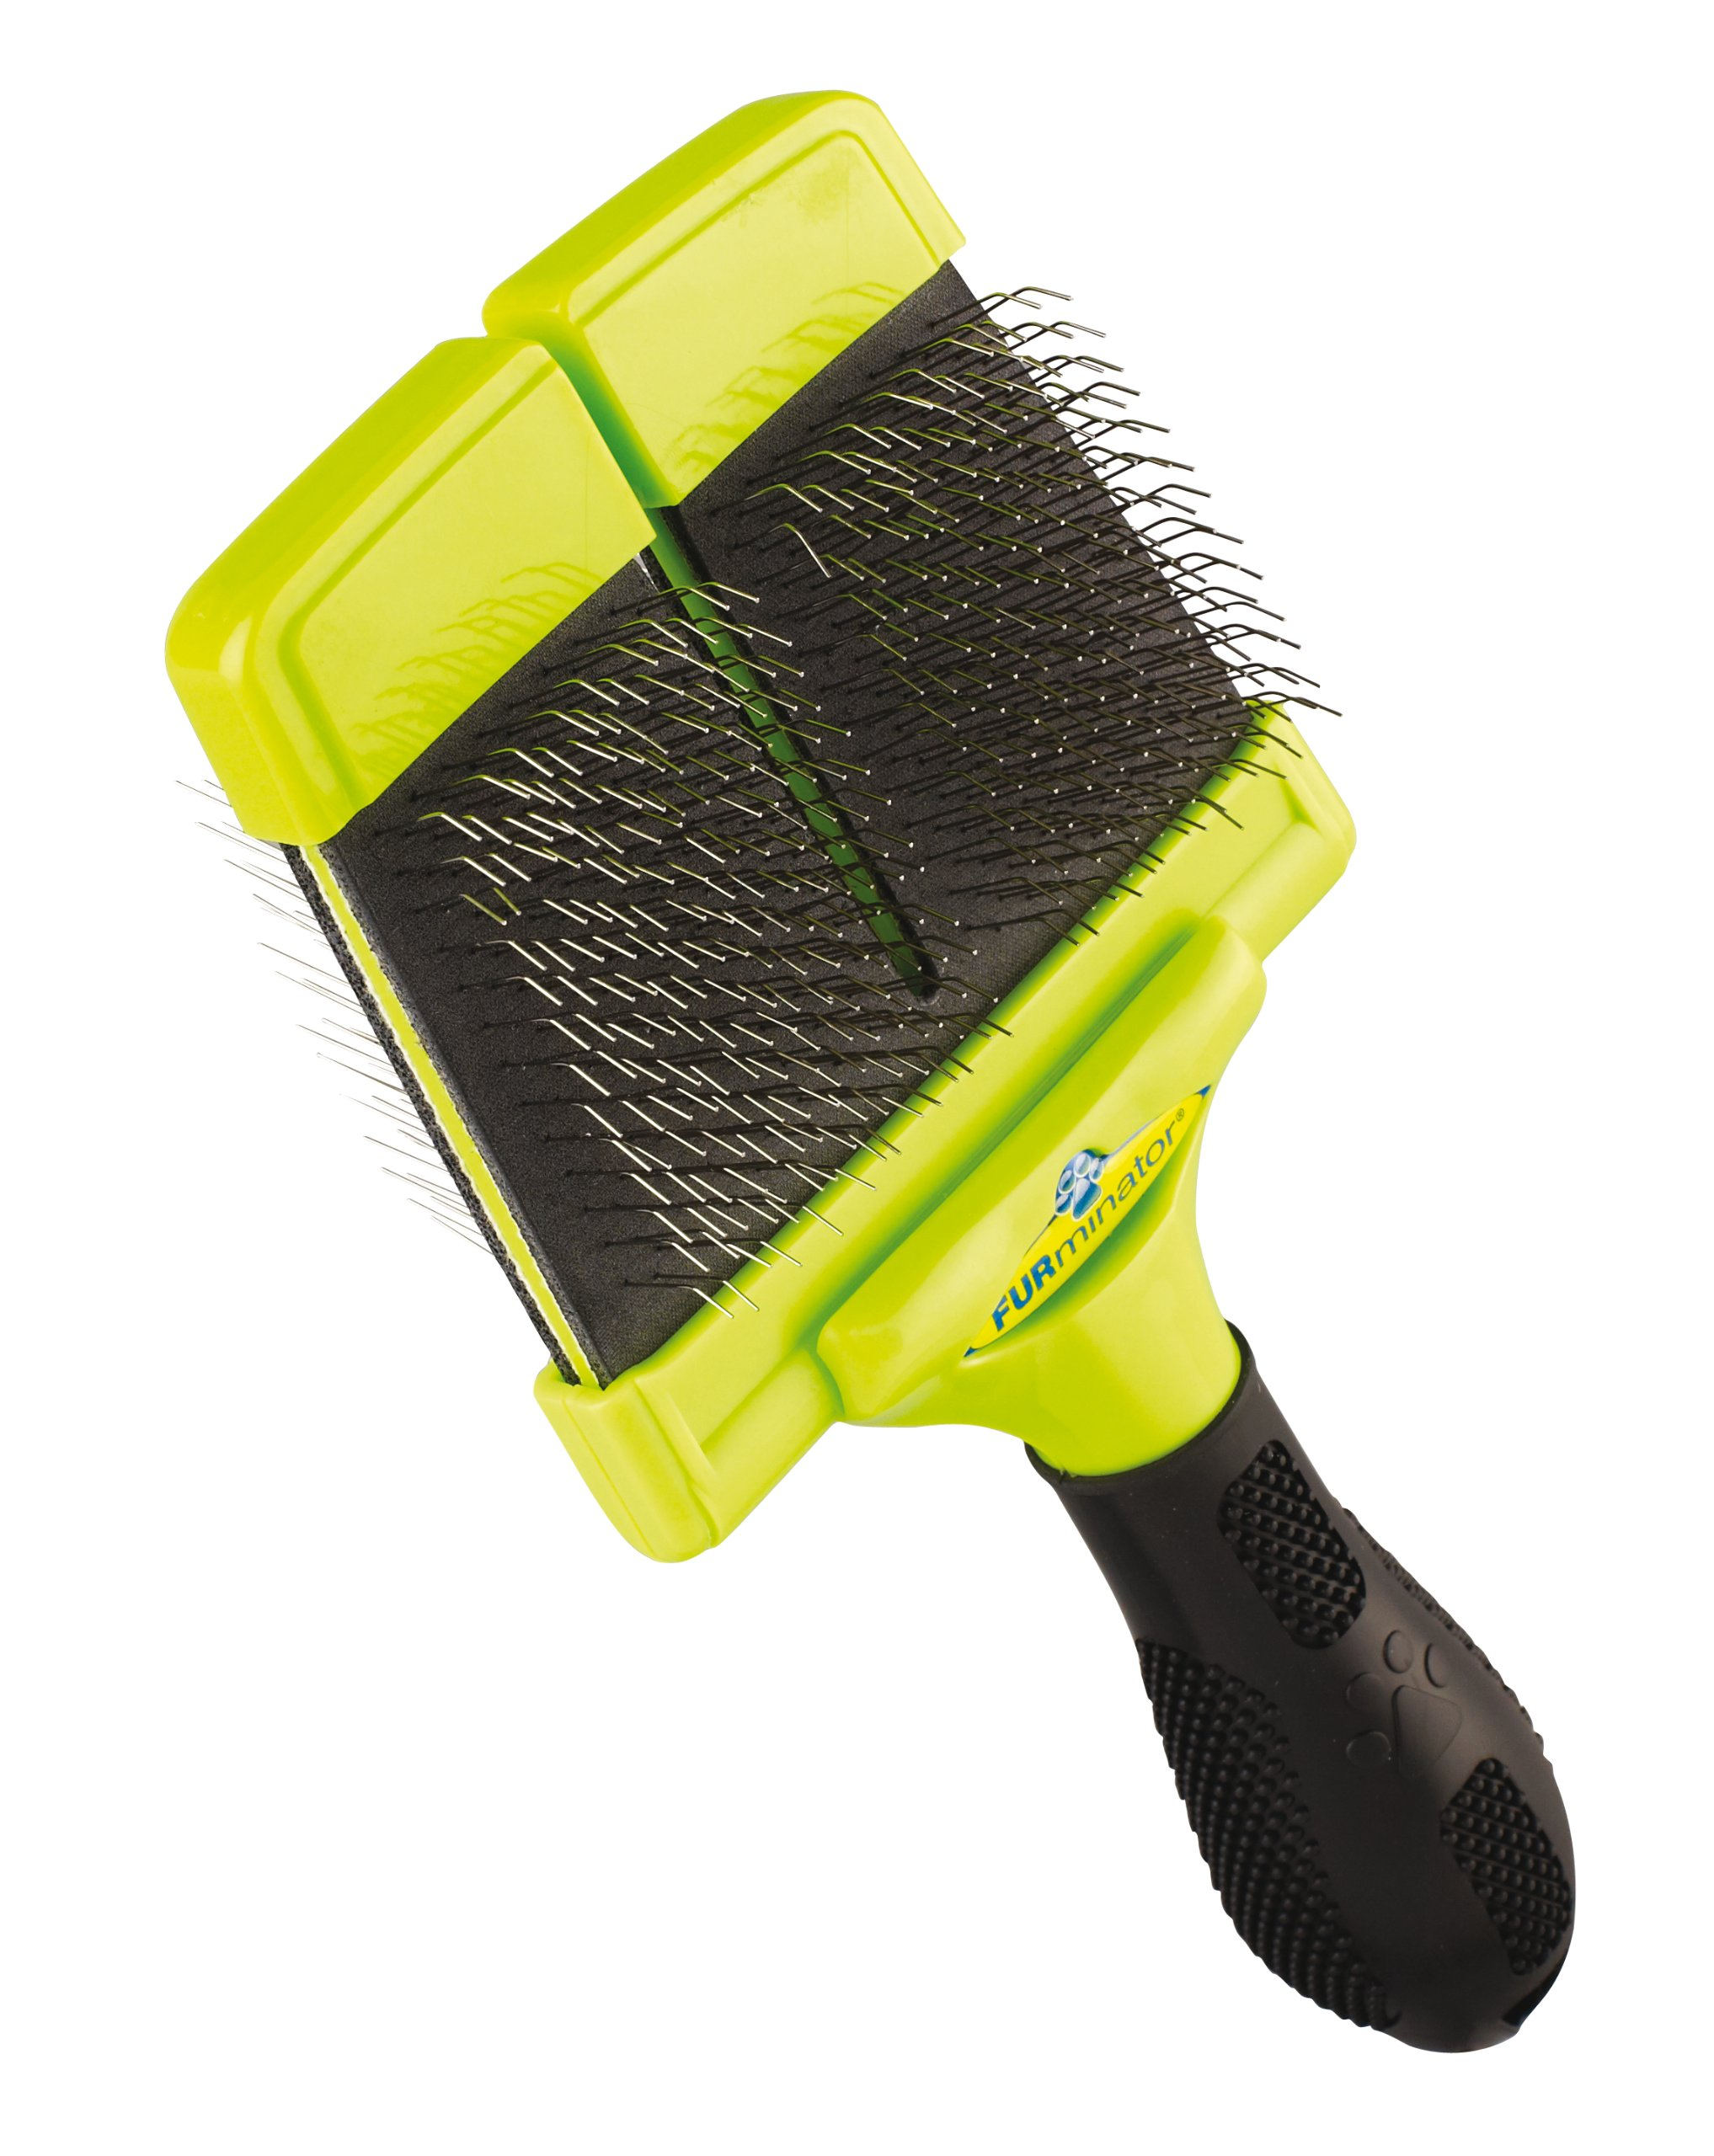 Furminator Slicker Brush with Soft Bristles for Dogs Large